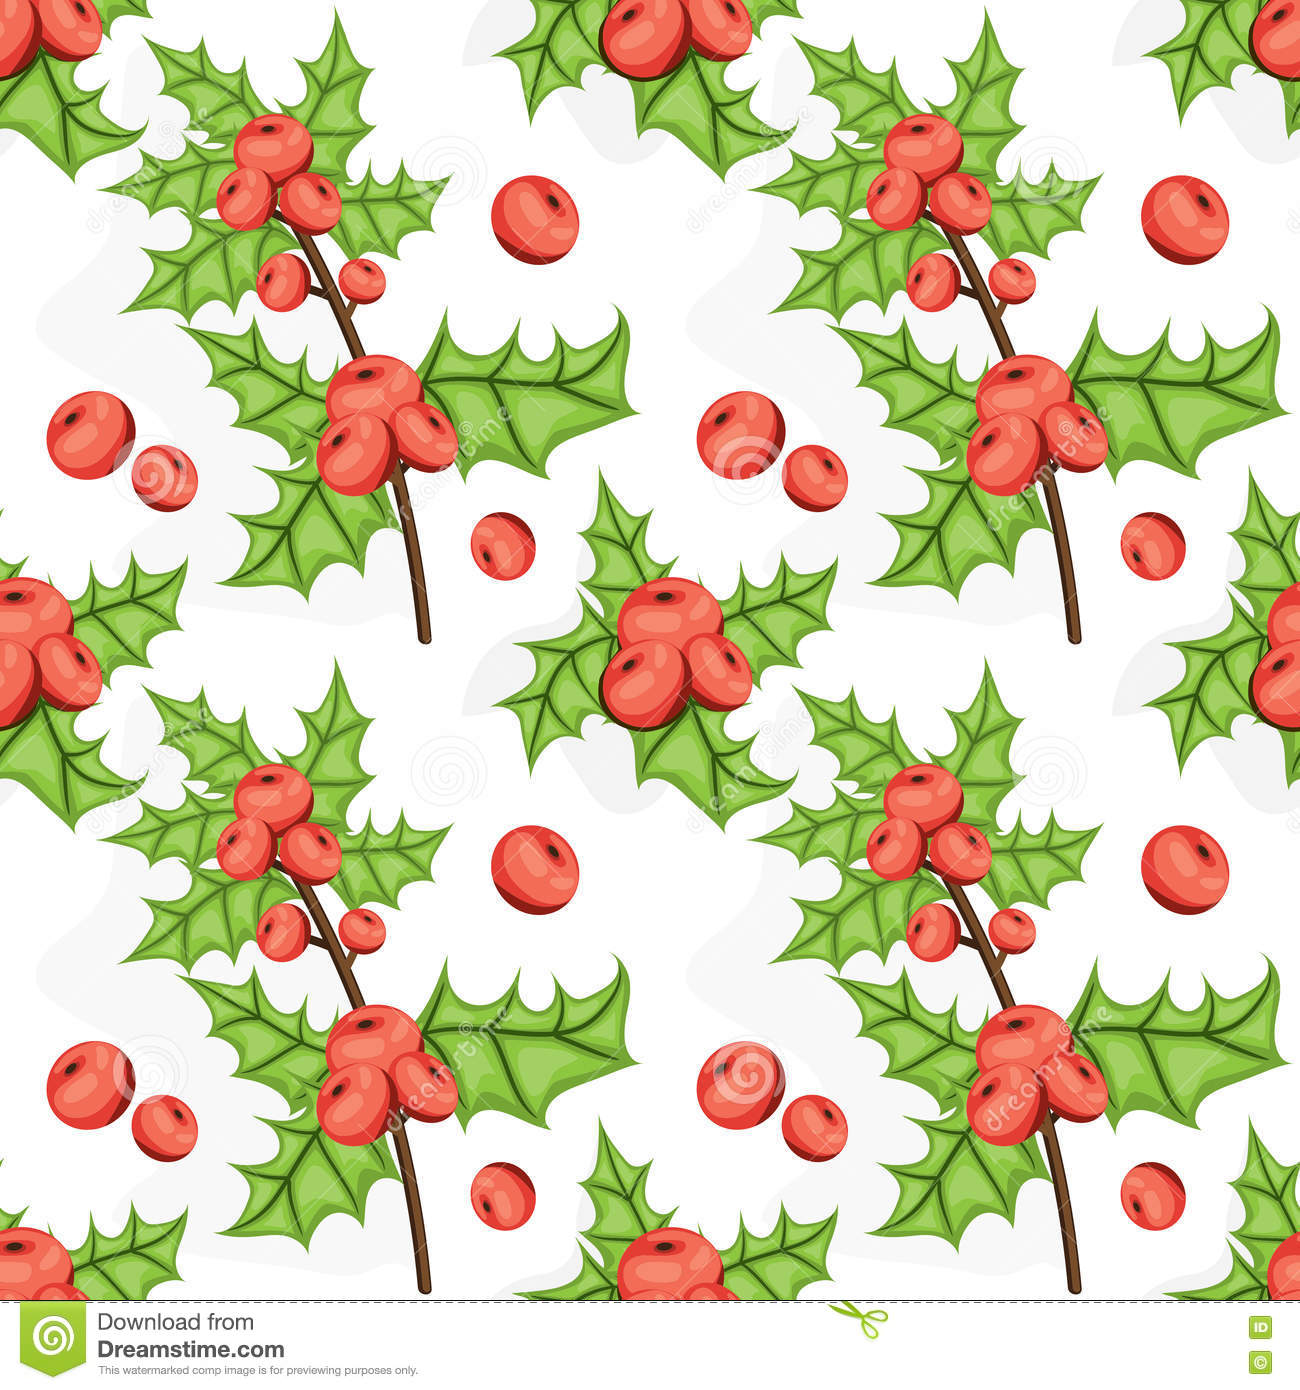 Seamless Noel pattern with holly berry. Tile Christmas background. Vector illustrated repeating texture. Holiday wrapping paper.